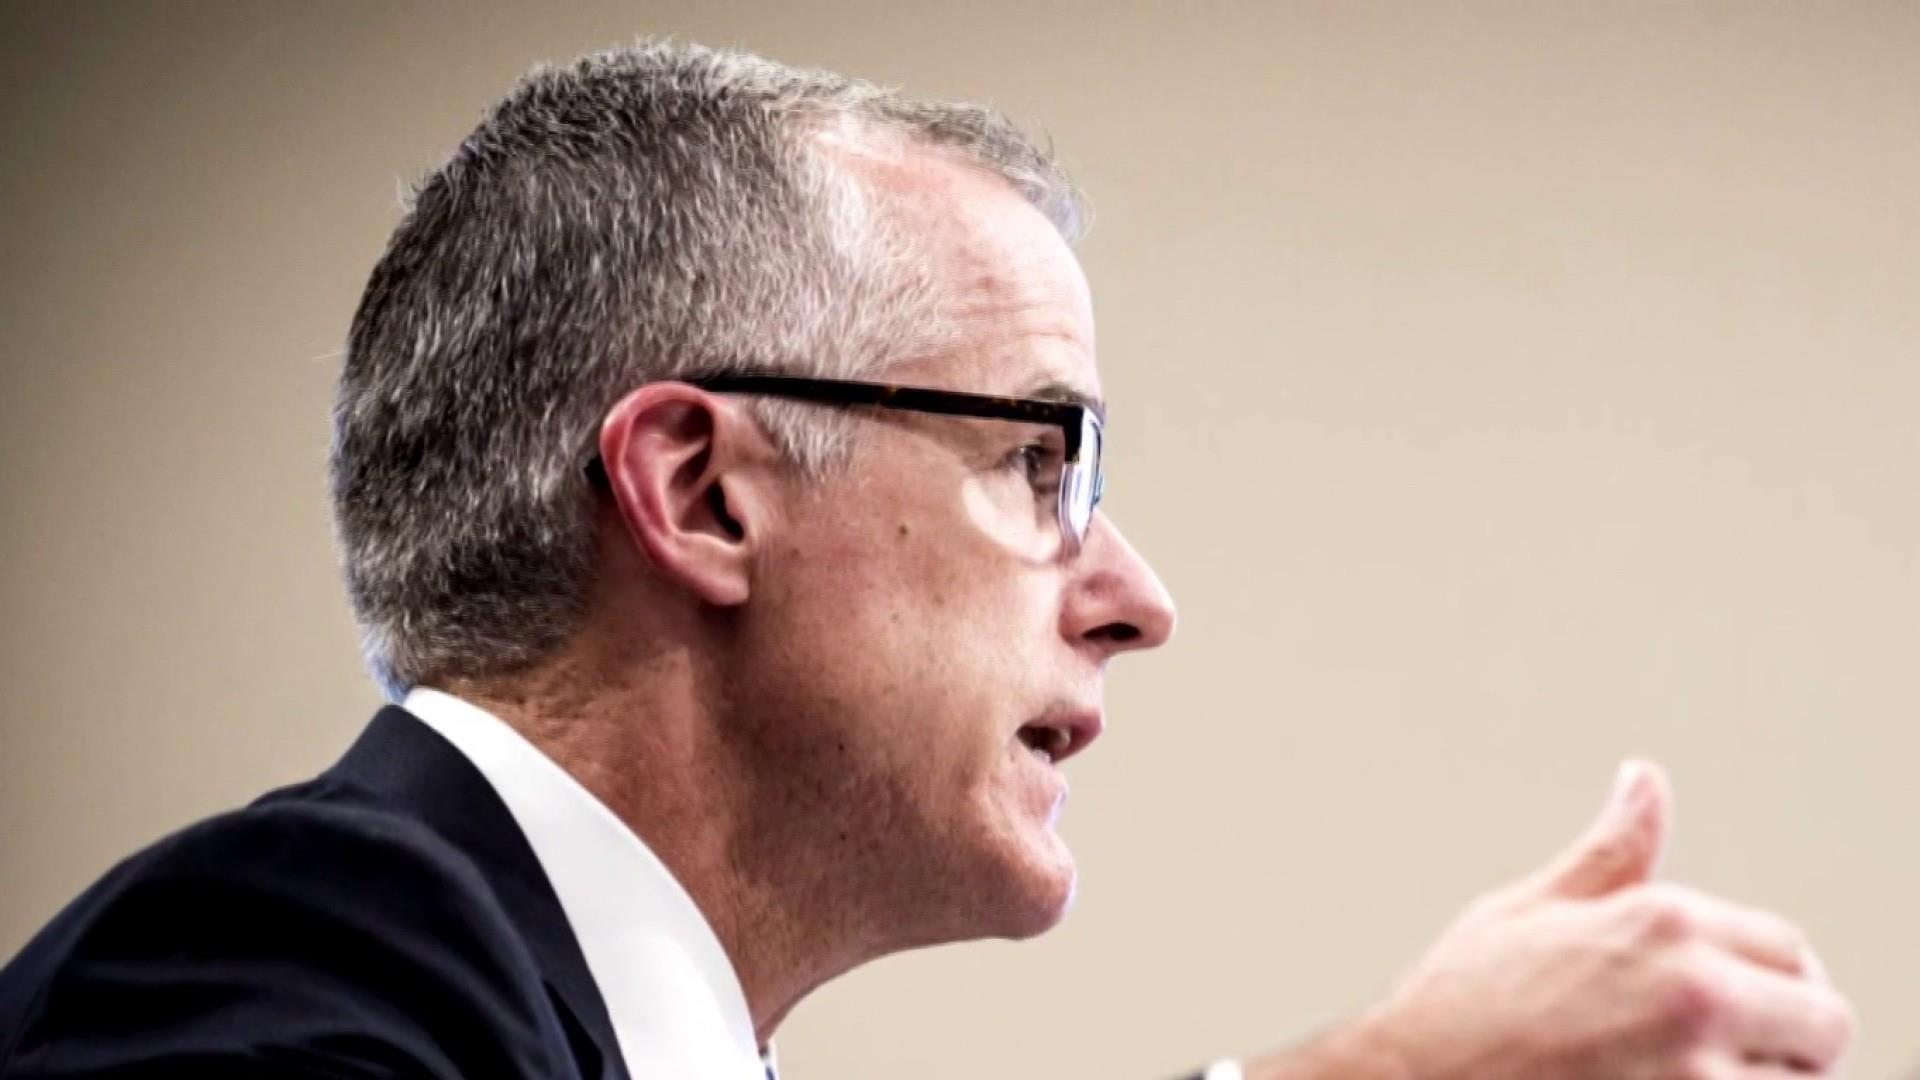 NEWS: Former acting FBI Director McCabe sues the Justice Department